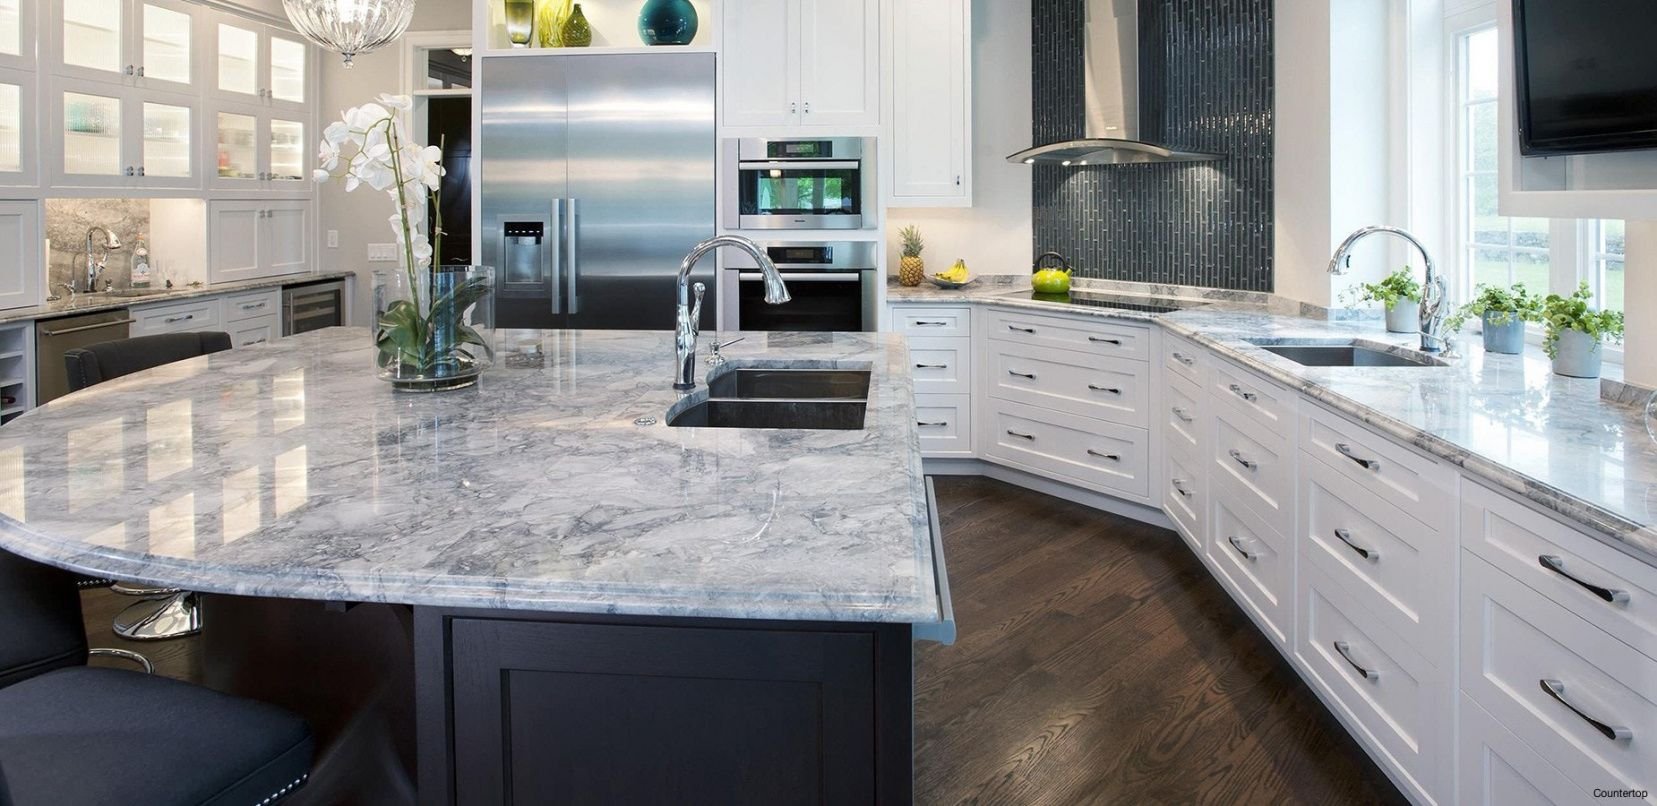 Charmant 55+ Golden Persa Granite Countertops   Kitchen Cabinet Inserts Ideas Check  More At Http: